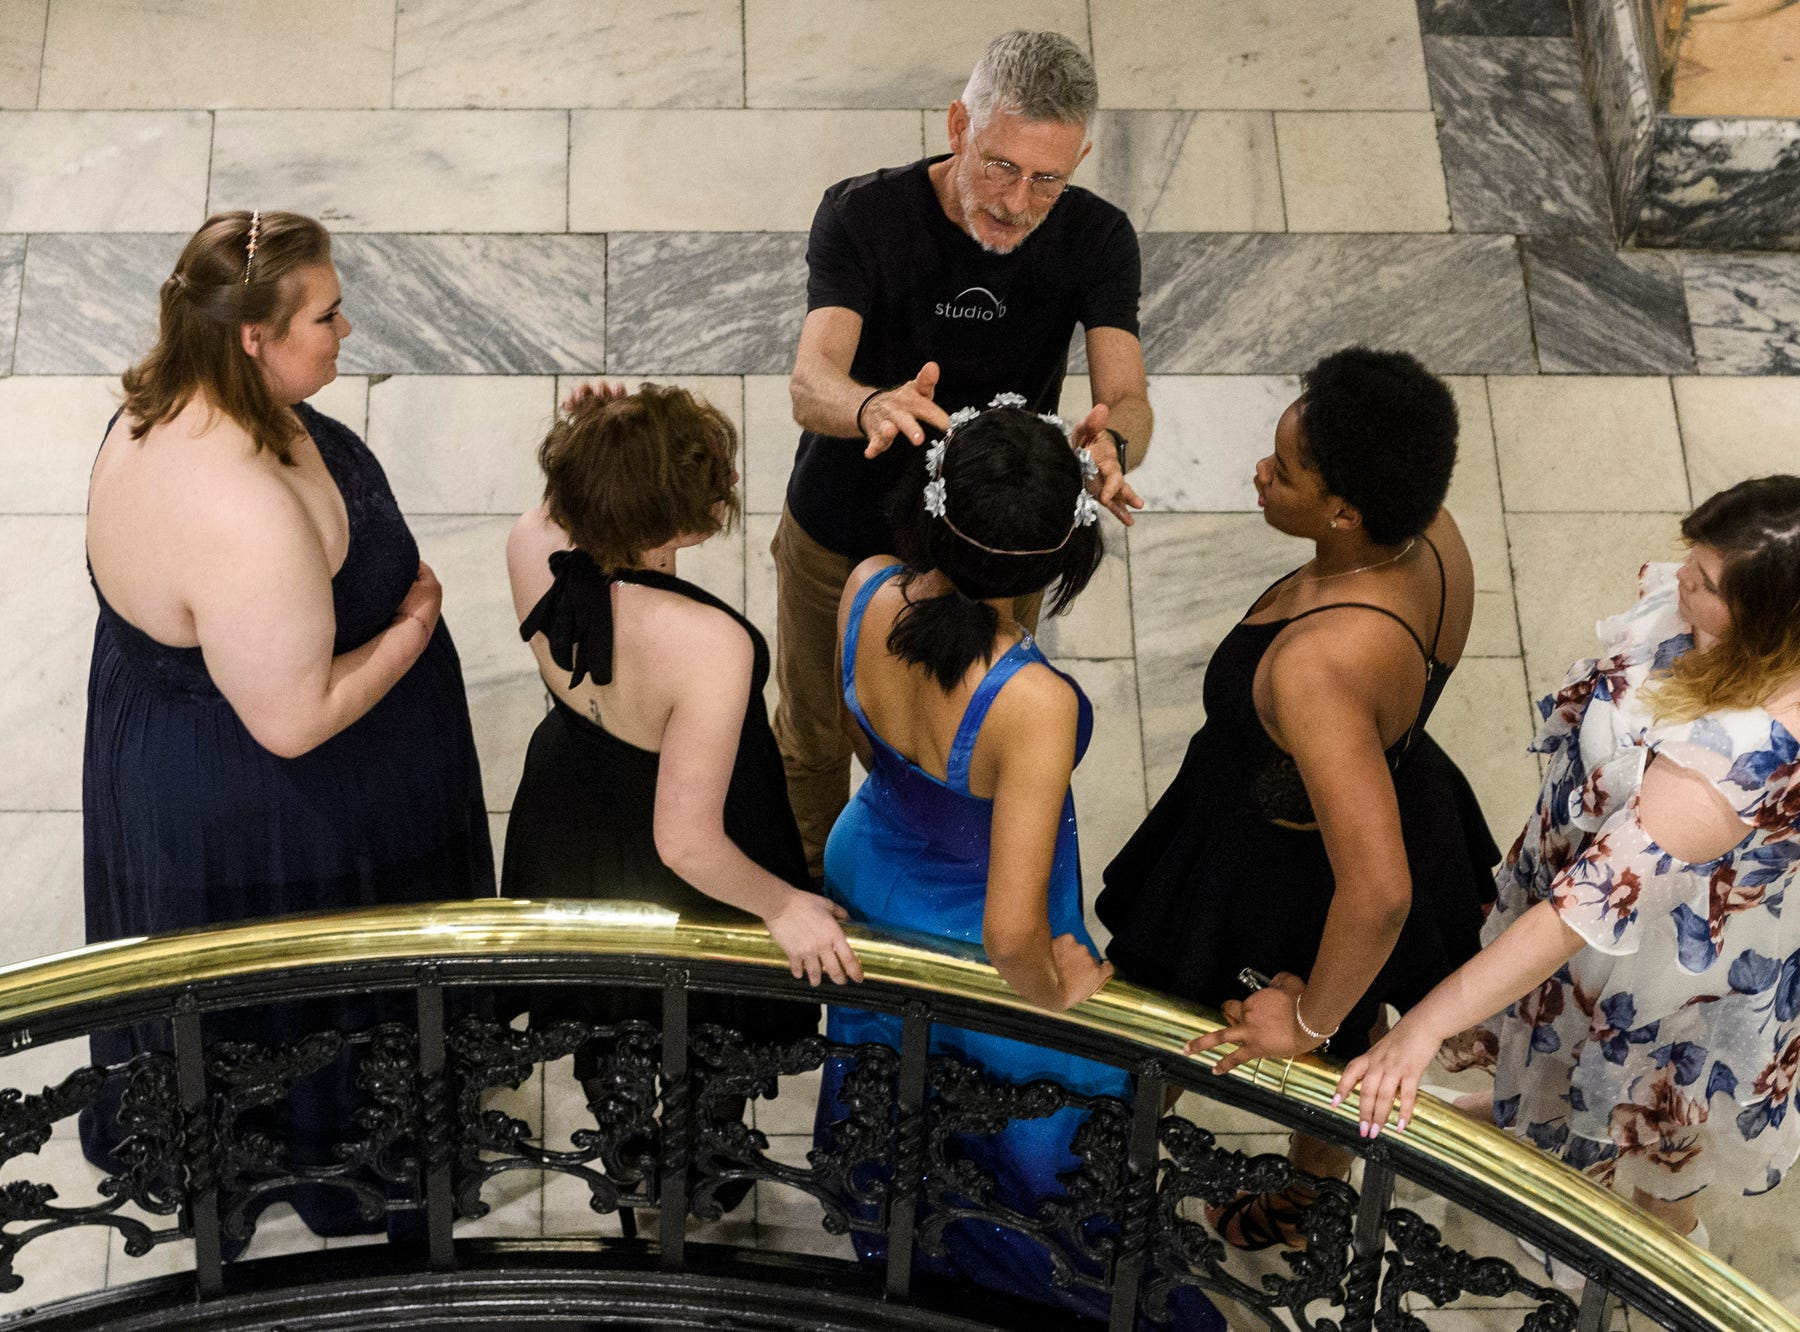 Daniel Knight, top center, of Studio B Photography poses Bosse High School students for a portrait during prom at the Old Vanderburgh County Courthouse in downtown Evansville, Ind., Saturday, April 6, 2019.